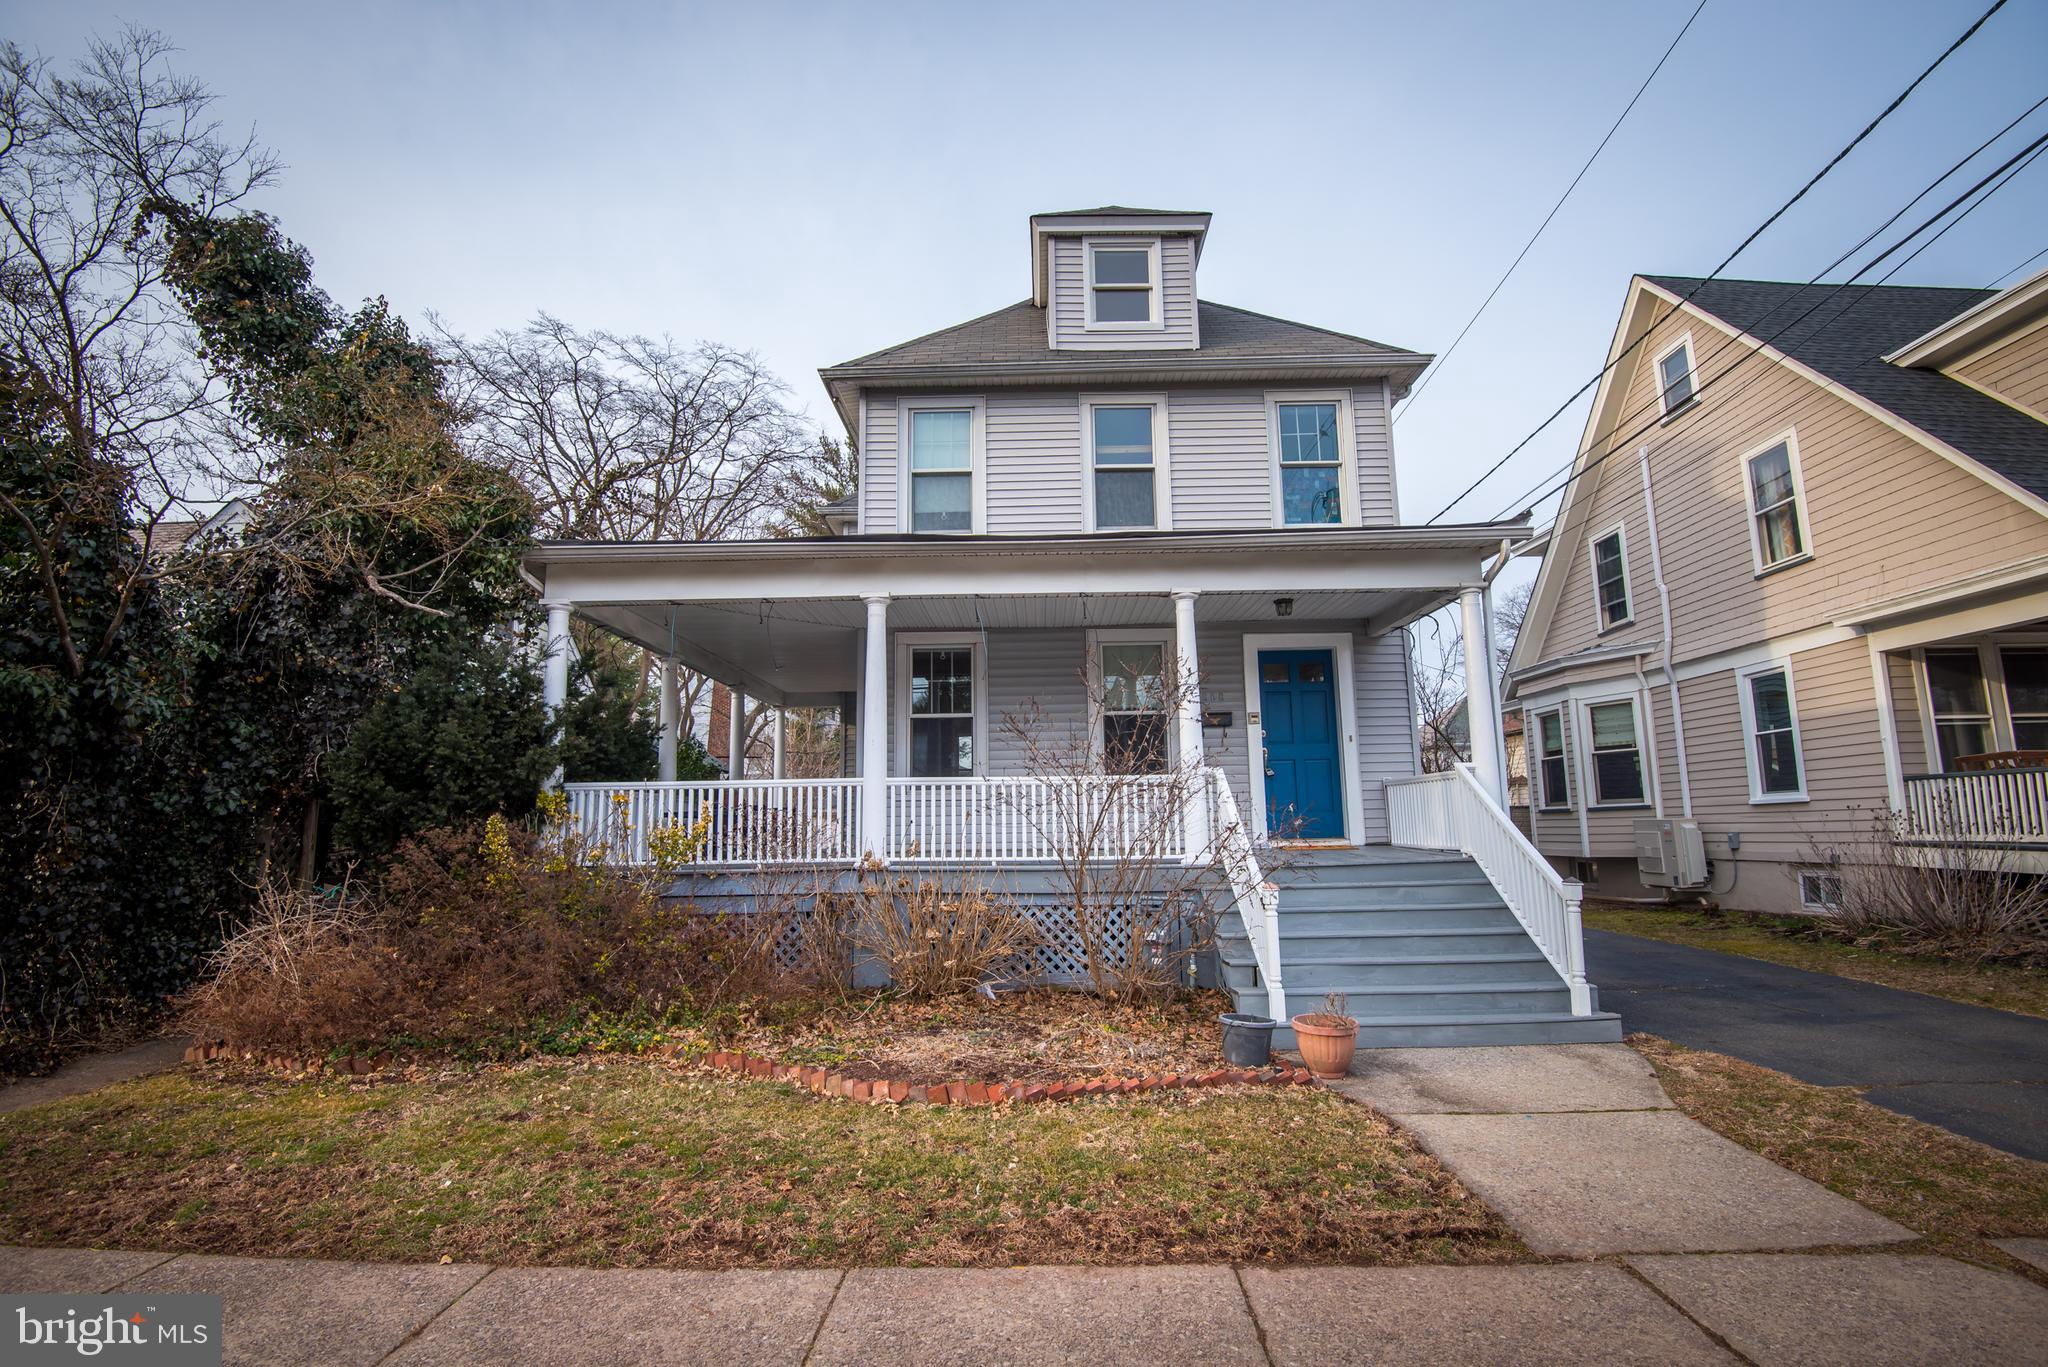 606 ABBOTT STREET, HIGHLAND PARK, NJ 08904